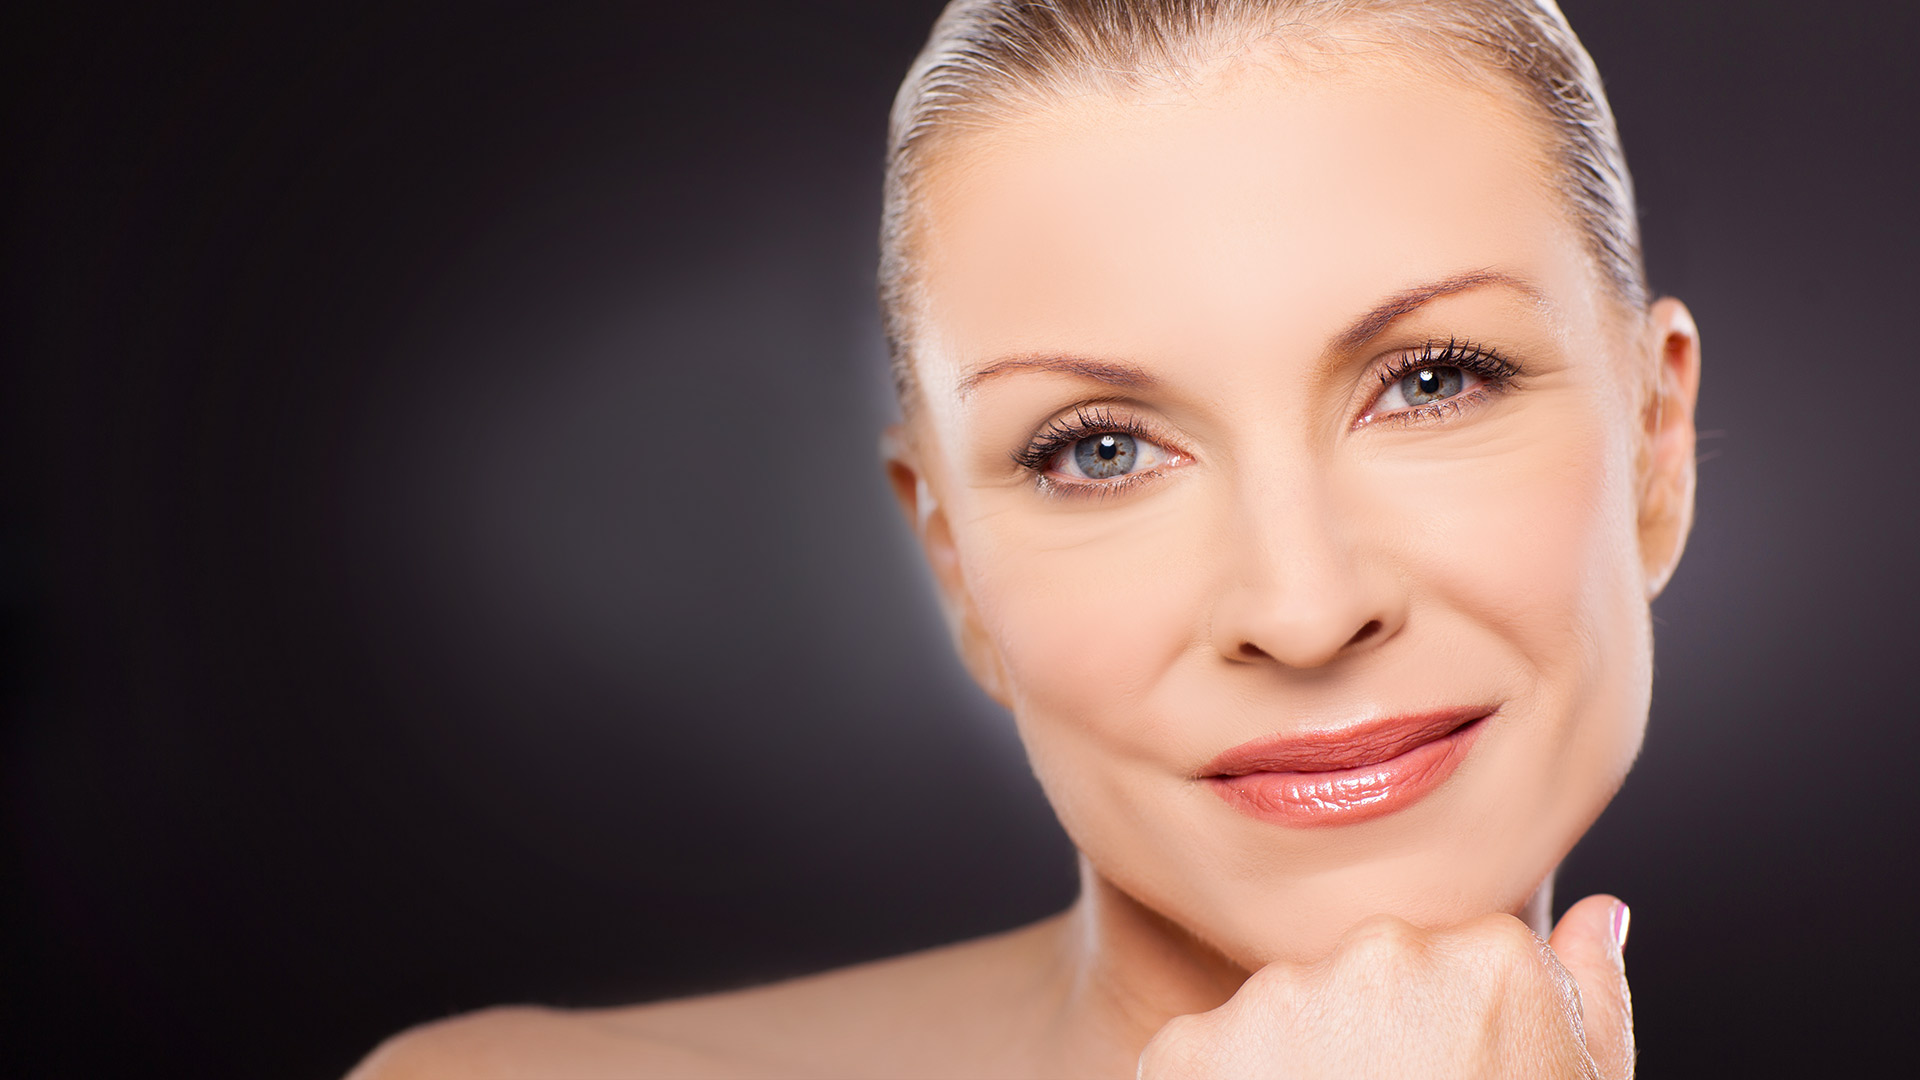 Facial cosmetic and reconstructive plastic surgery